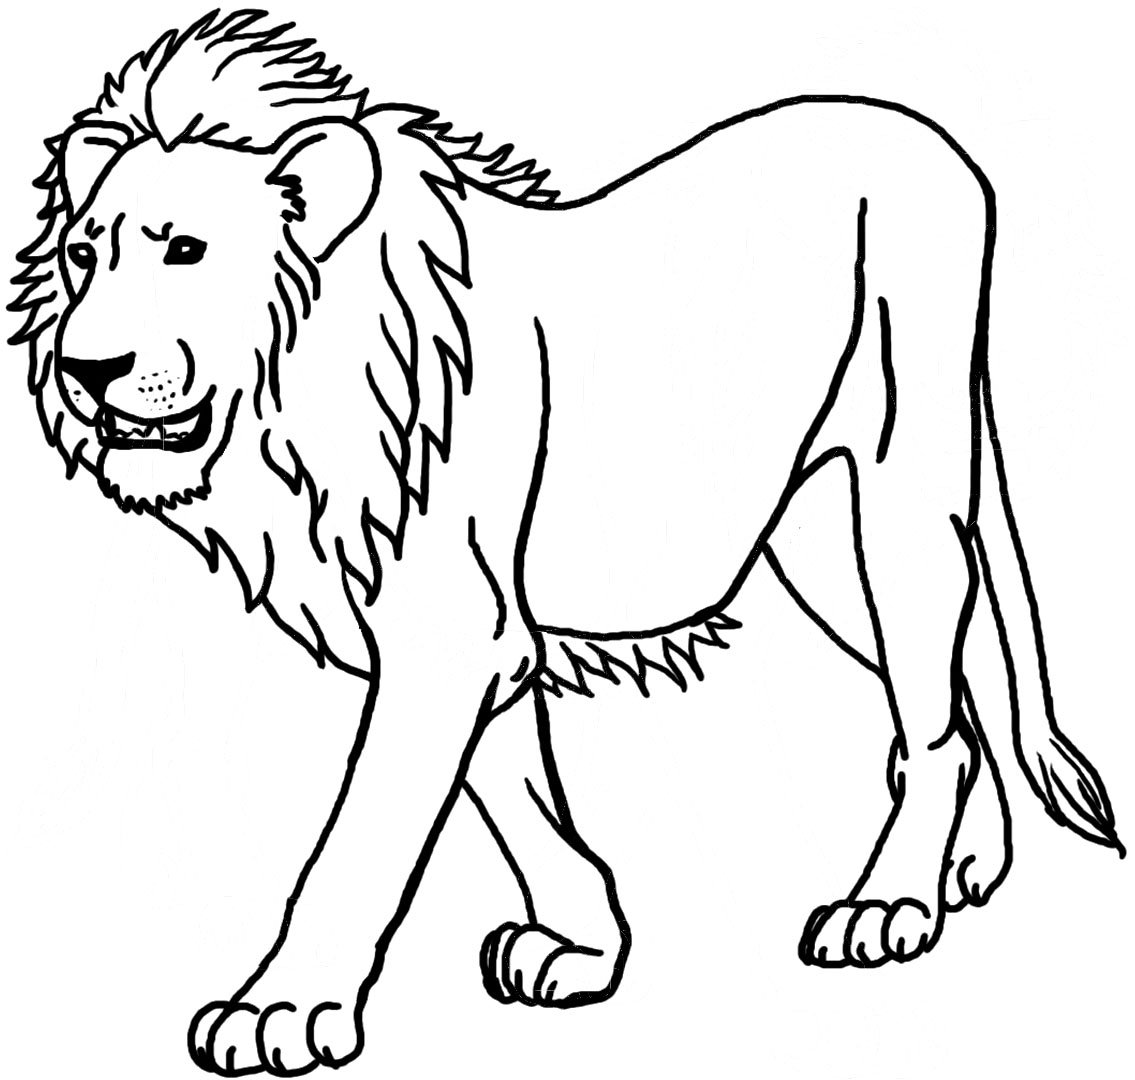 Drawing Coloring Page Of A Lion 98 In For Kids With Coloring Page